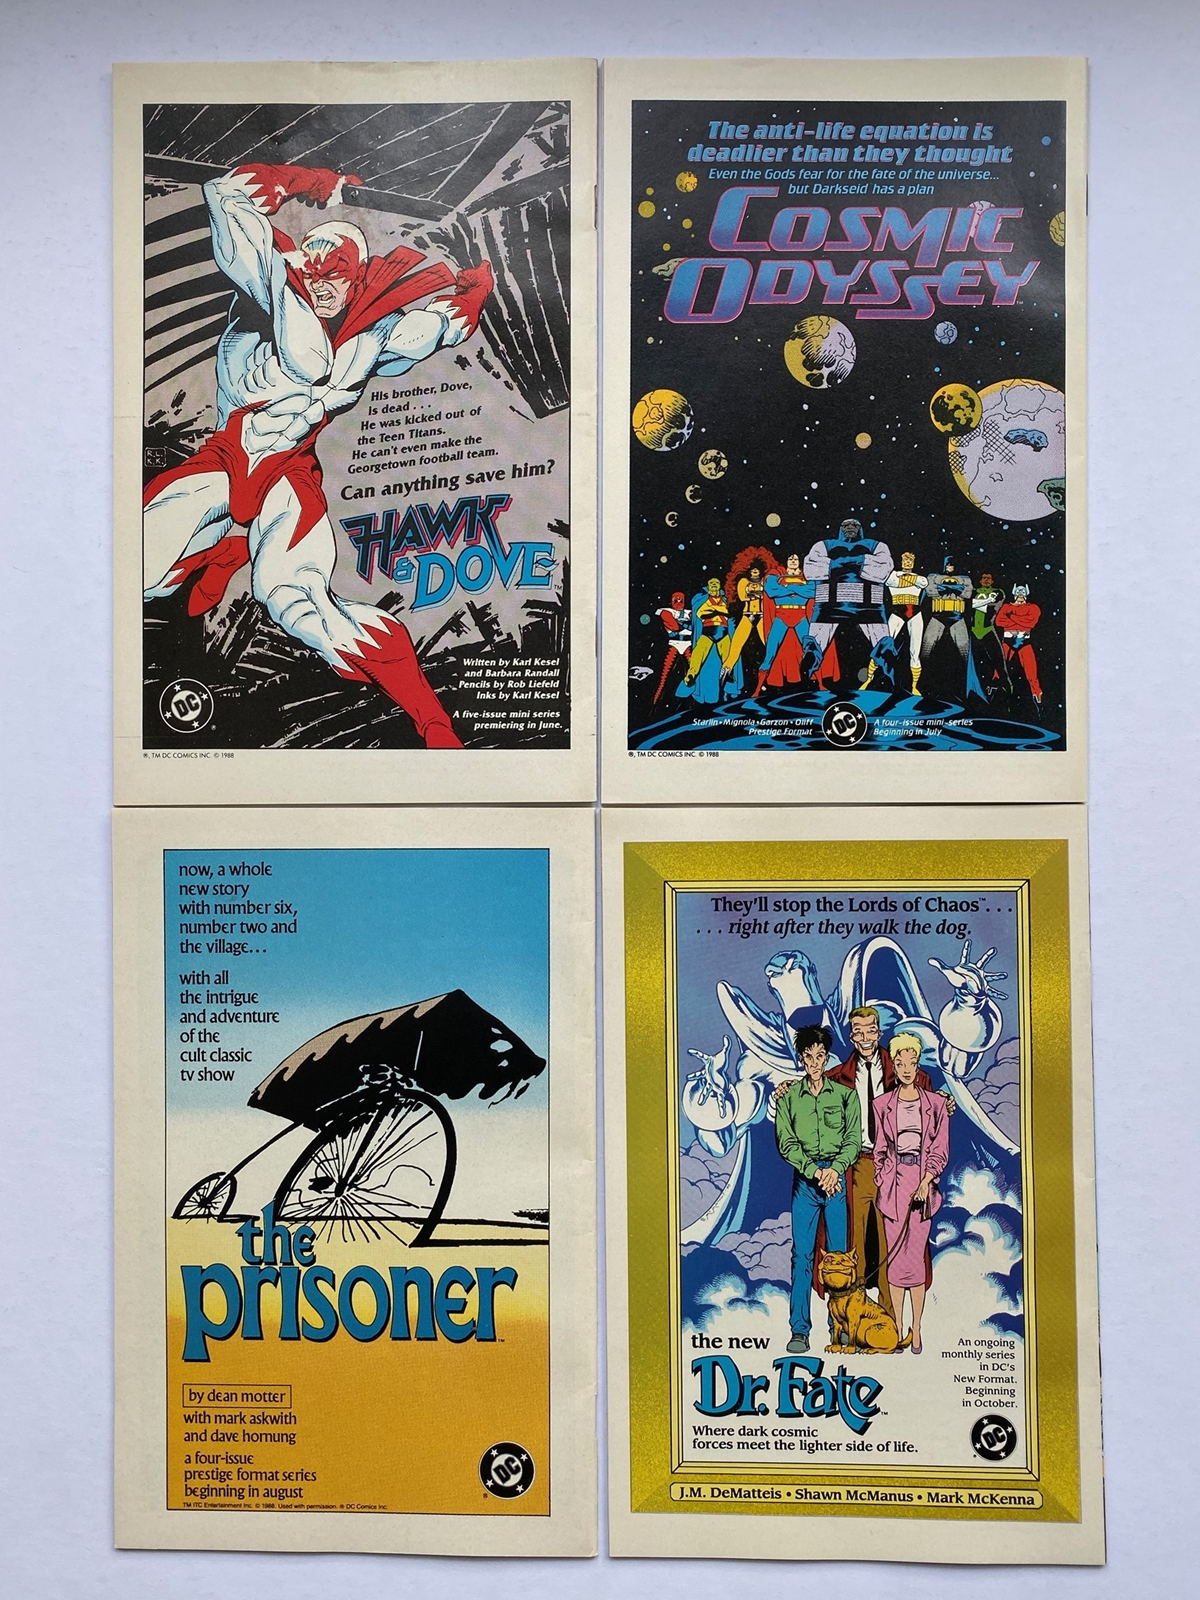 Lot 2168 - ANIMAL MAN #1, 2, 3, 4 (4 in Lot) - (1988) - DC VFN+ (Cents/Pence Copy) - Flat/Unfolded - Very